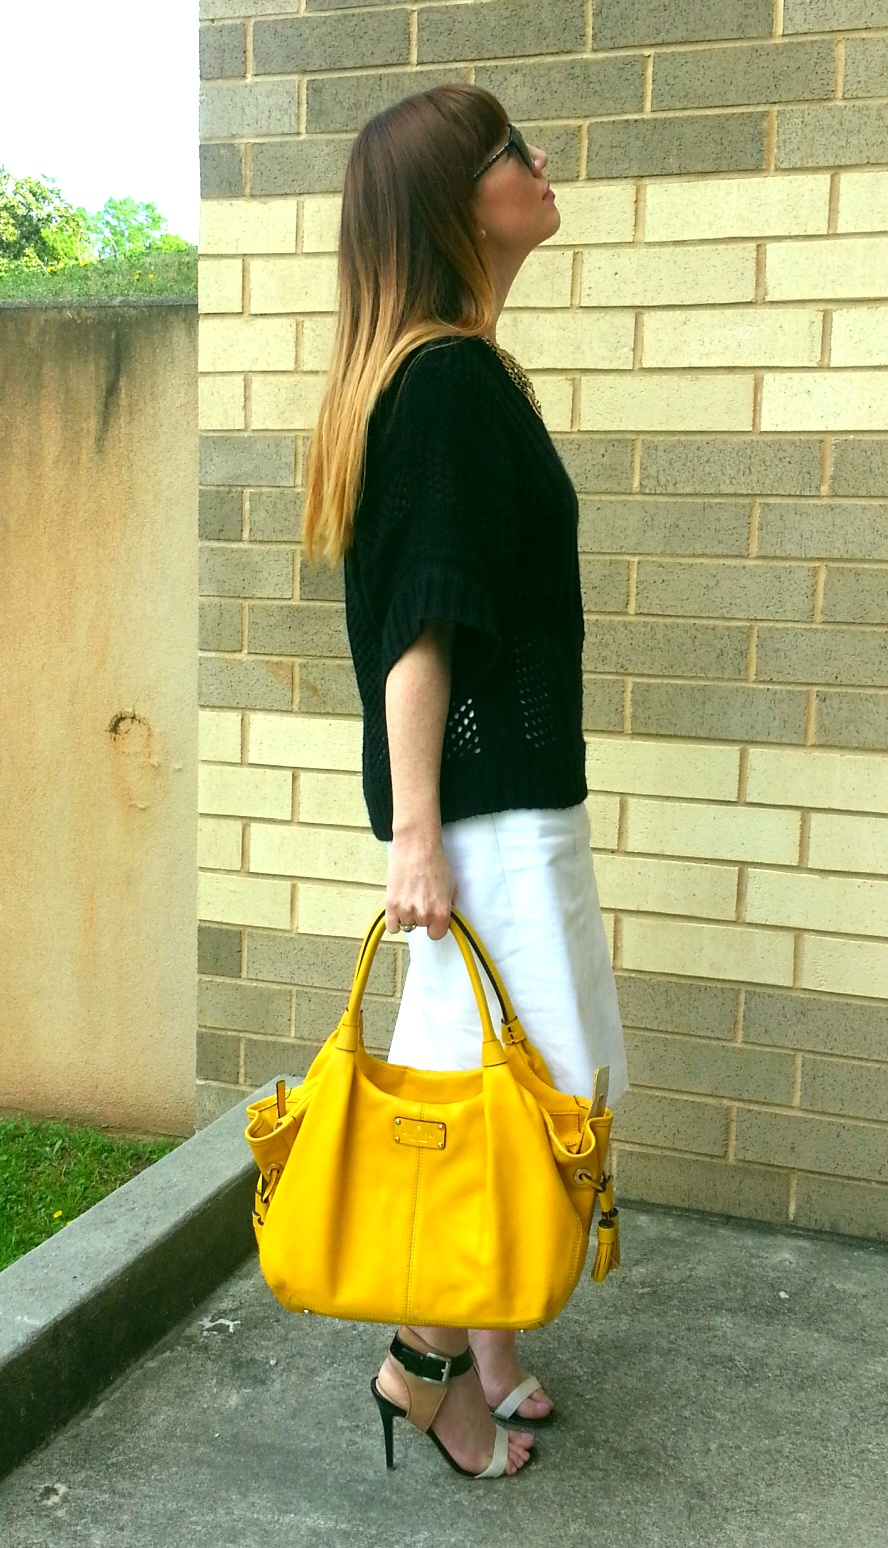 Yellow purse – say no to bright color purchase